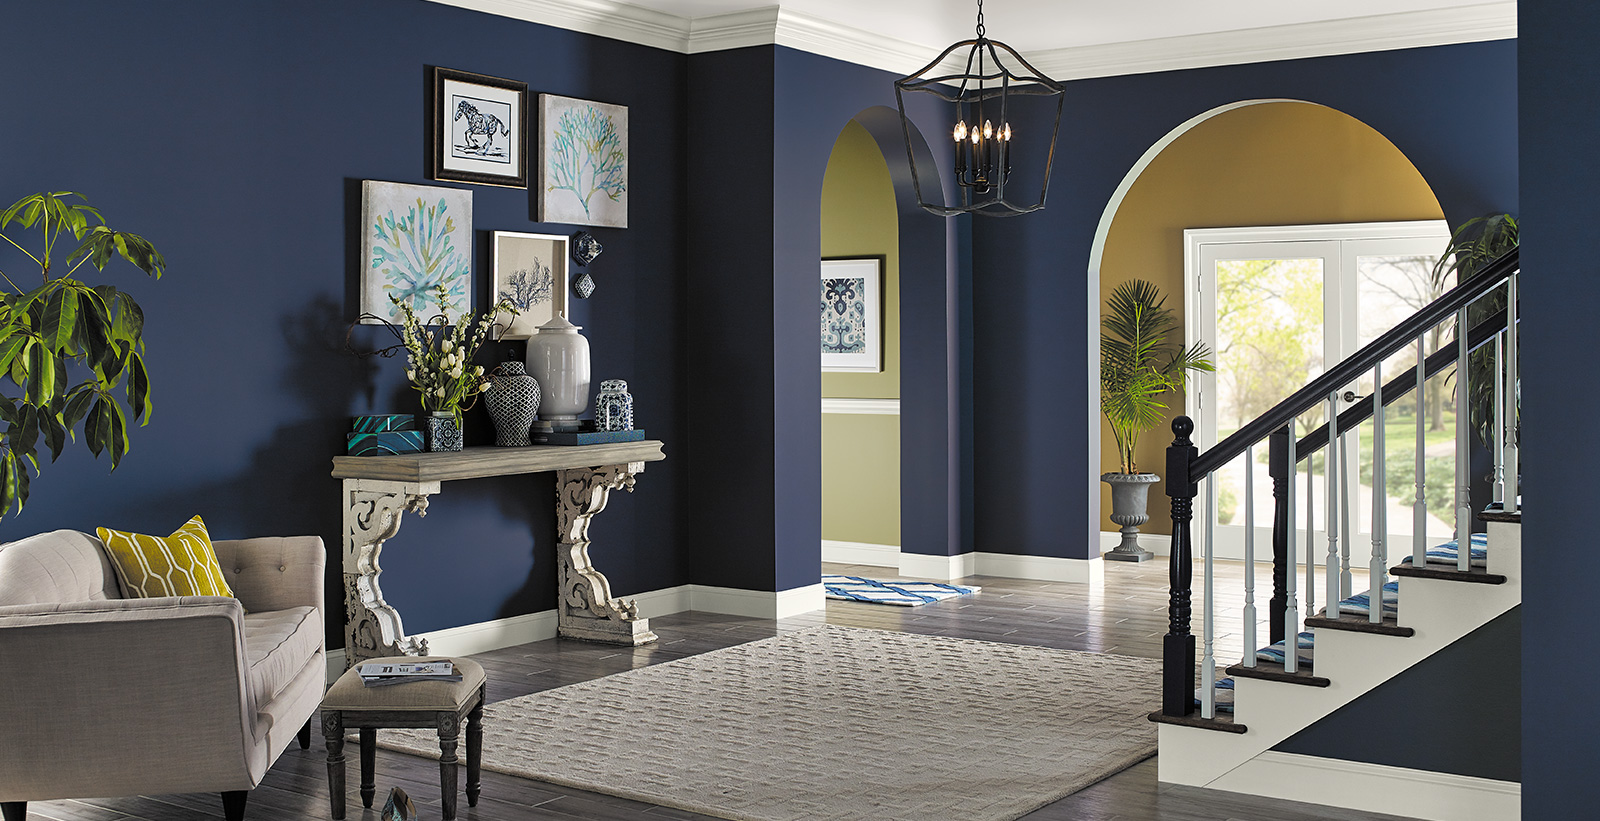 Hallway with stairs, dark navy walls, white trim, and vintage furniture, bold and sophisticated style.